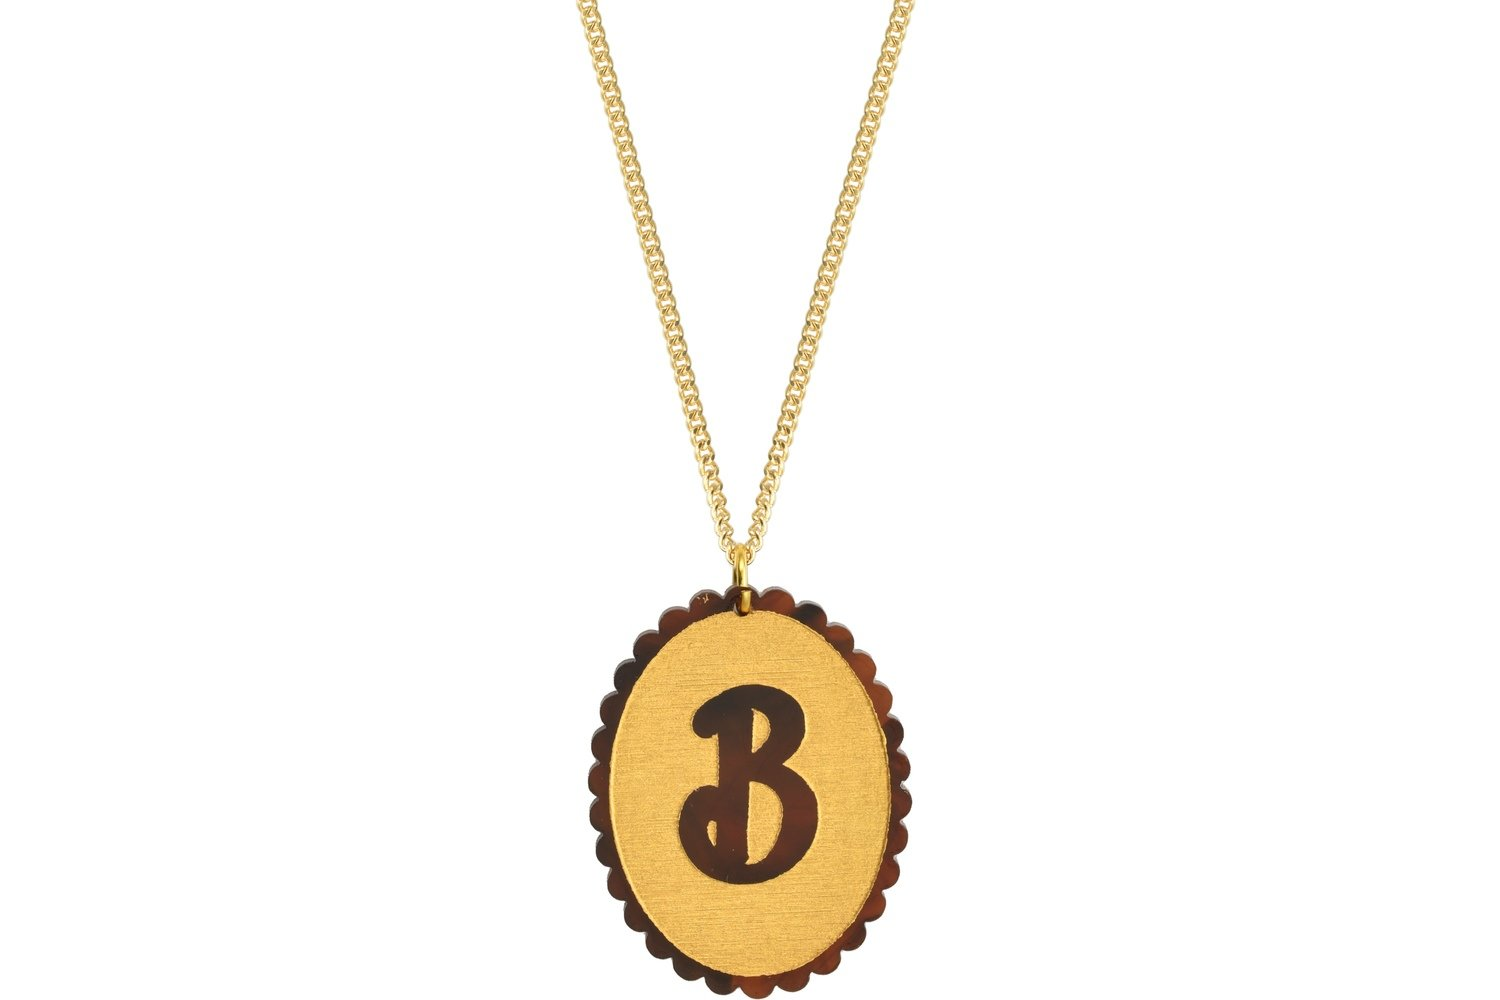 Scallop Initial Pendant with Chain Necklace